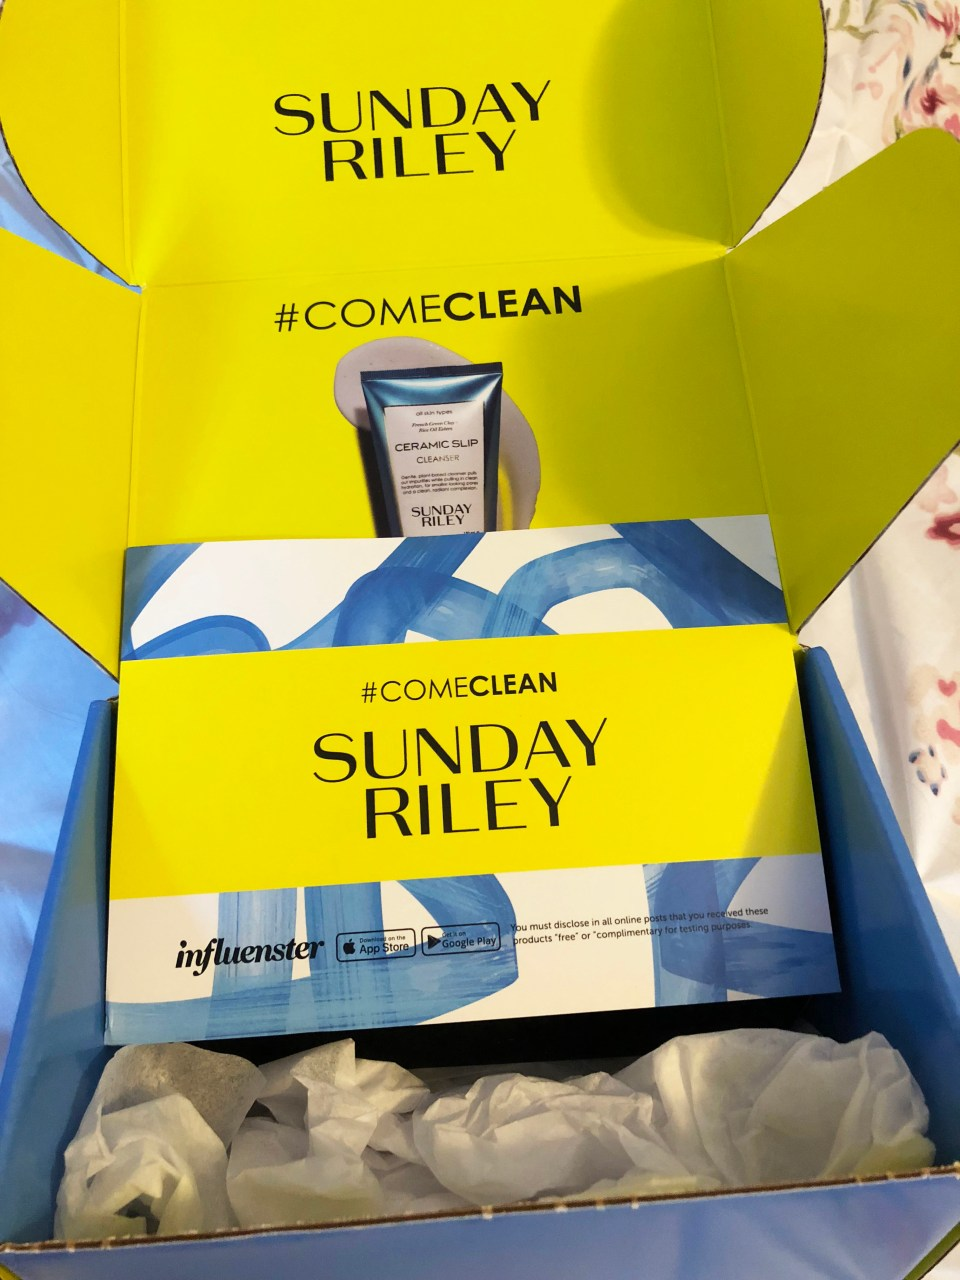 Sunday Riley - Ceramic Slip Cleanser